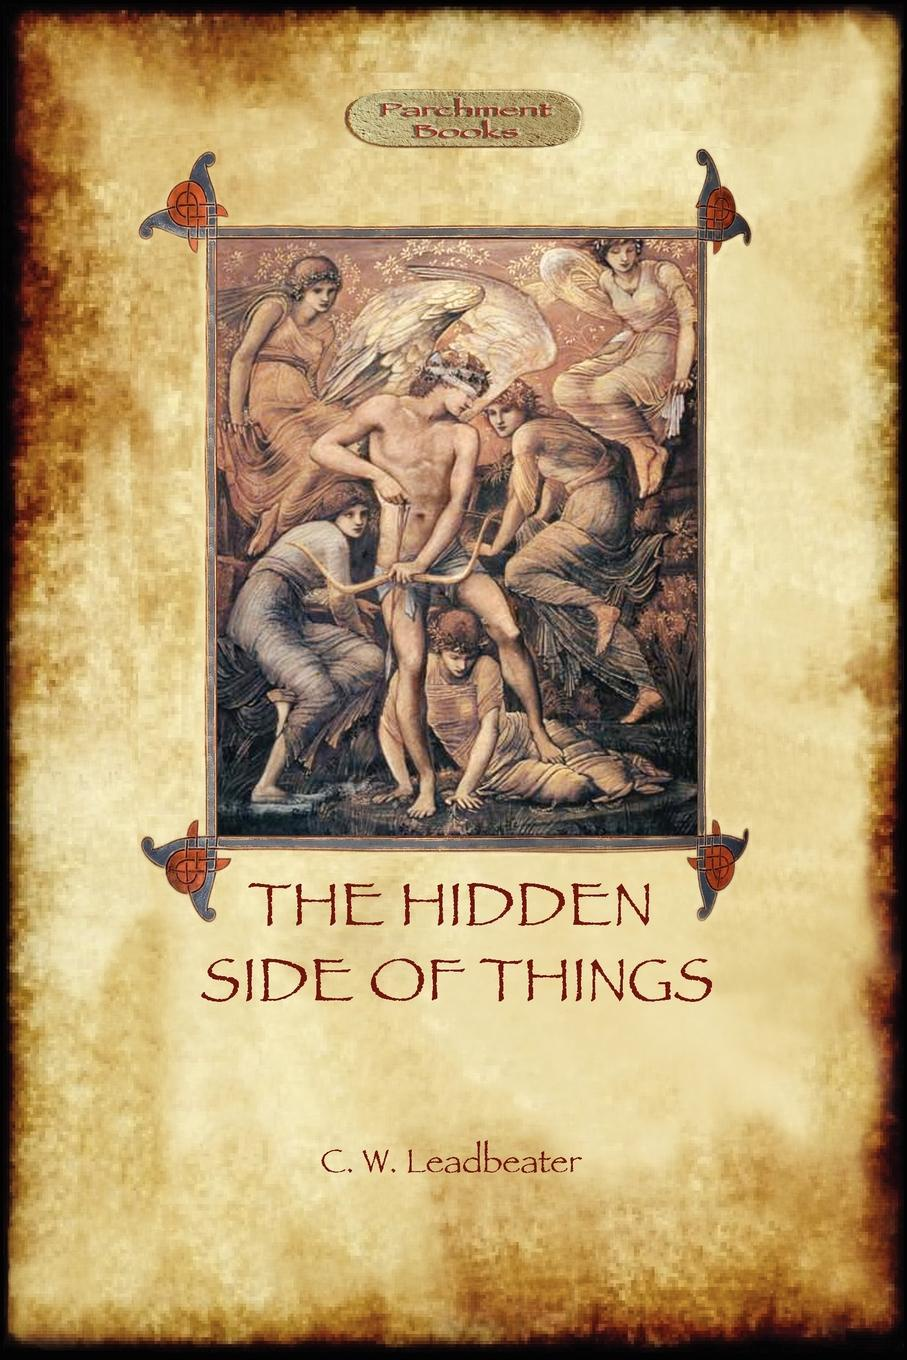 Charles Webster Leadbeater. The Hidden Side of Things - Vols. I & II